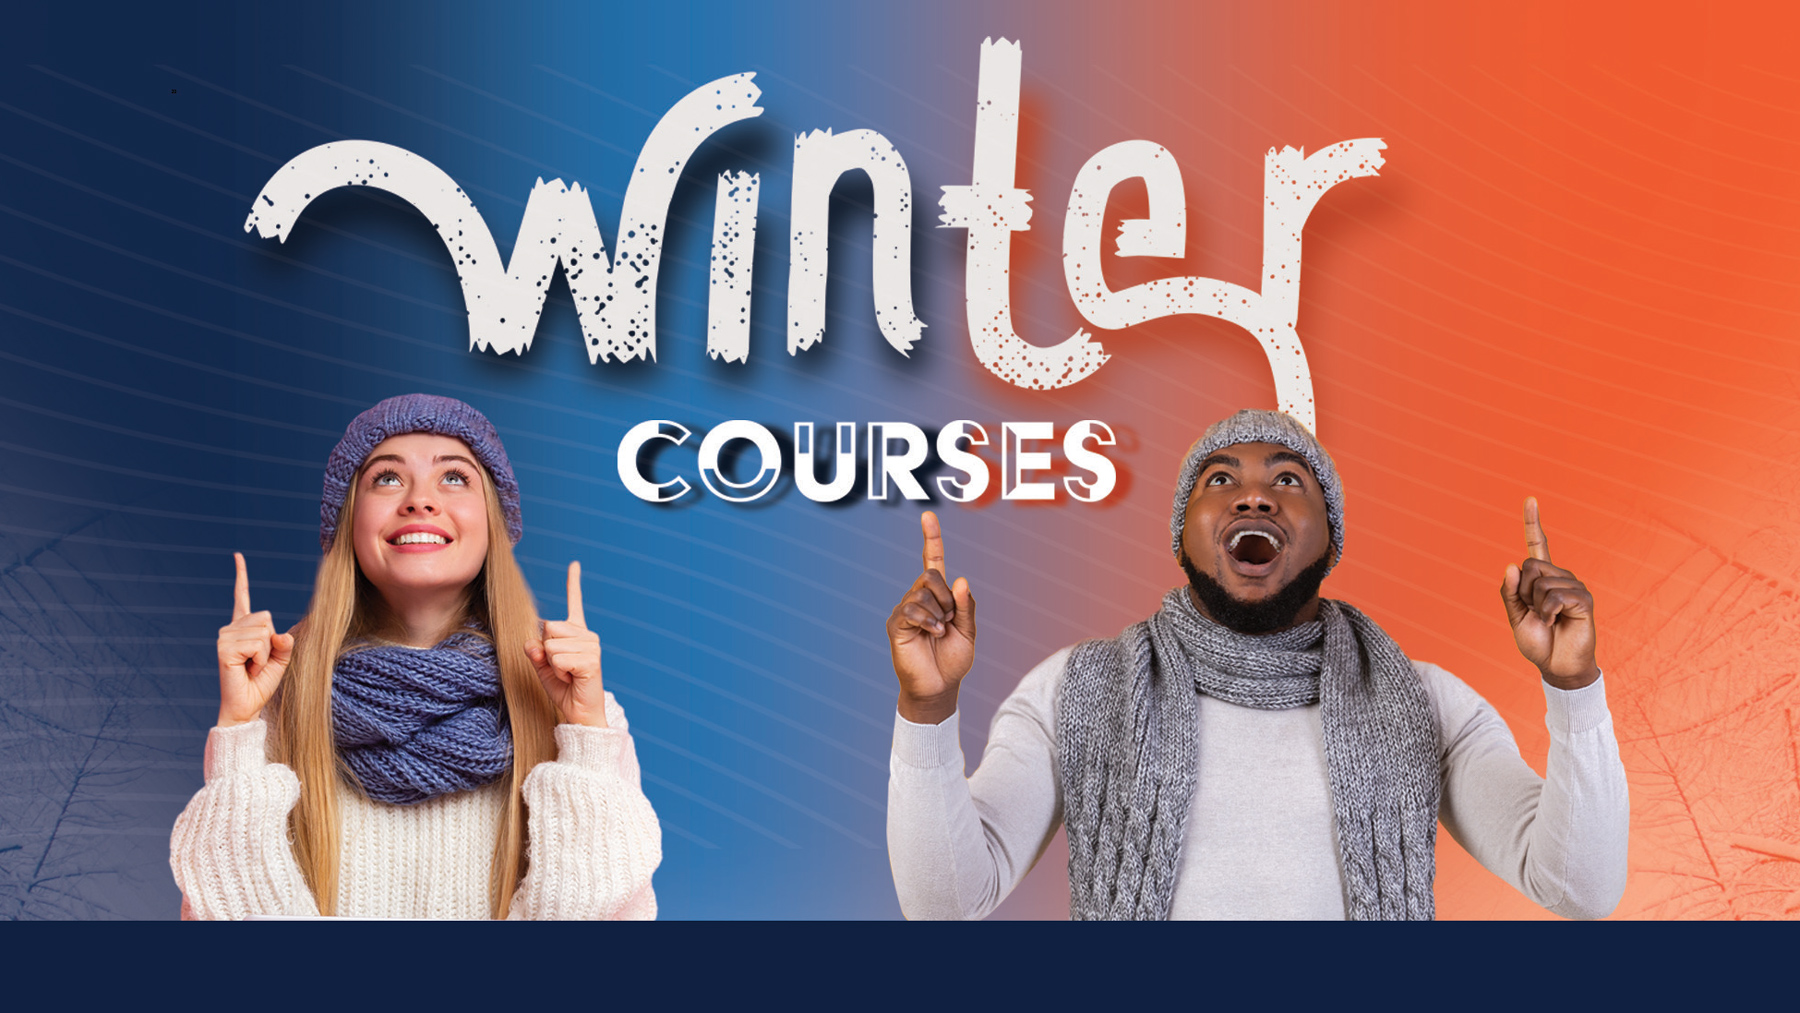 two students in winter attire are thrilled about taking an online course